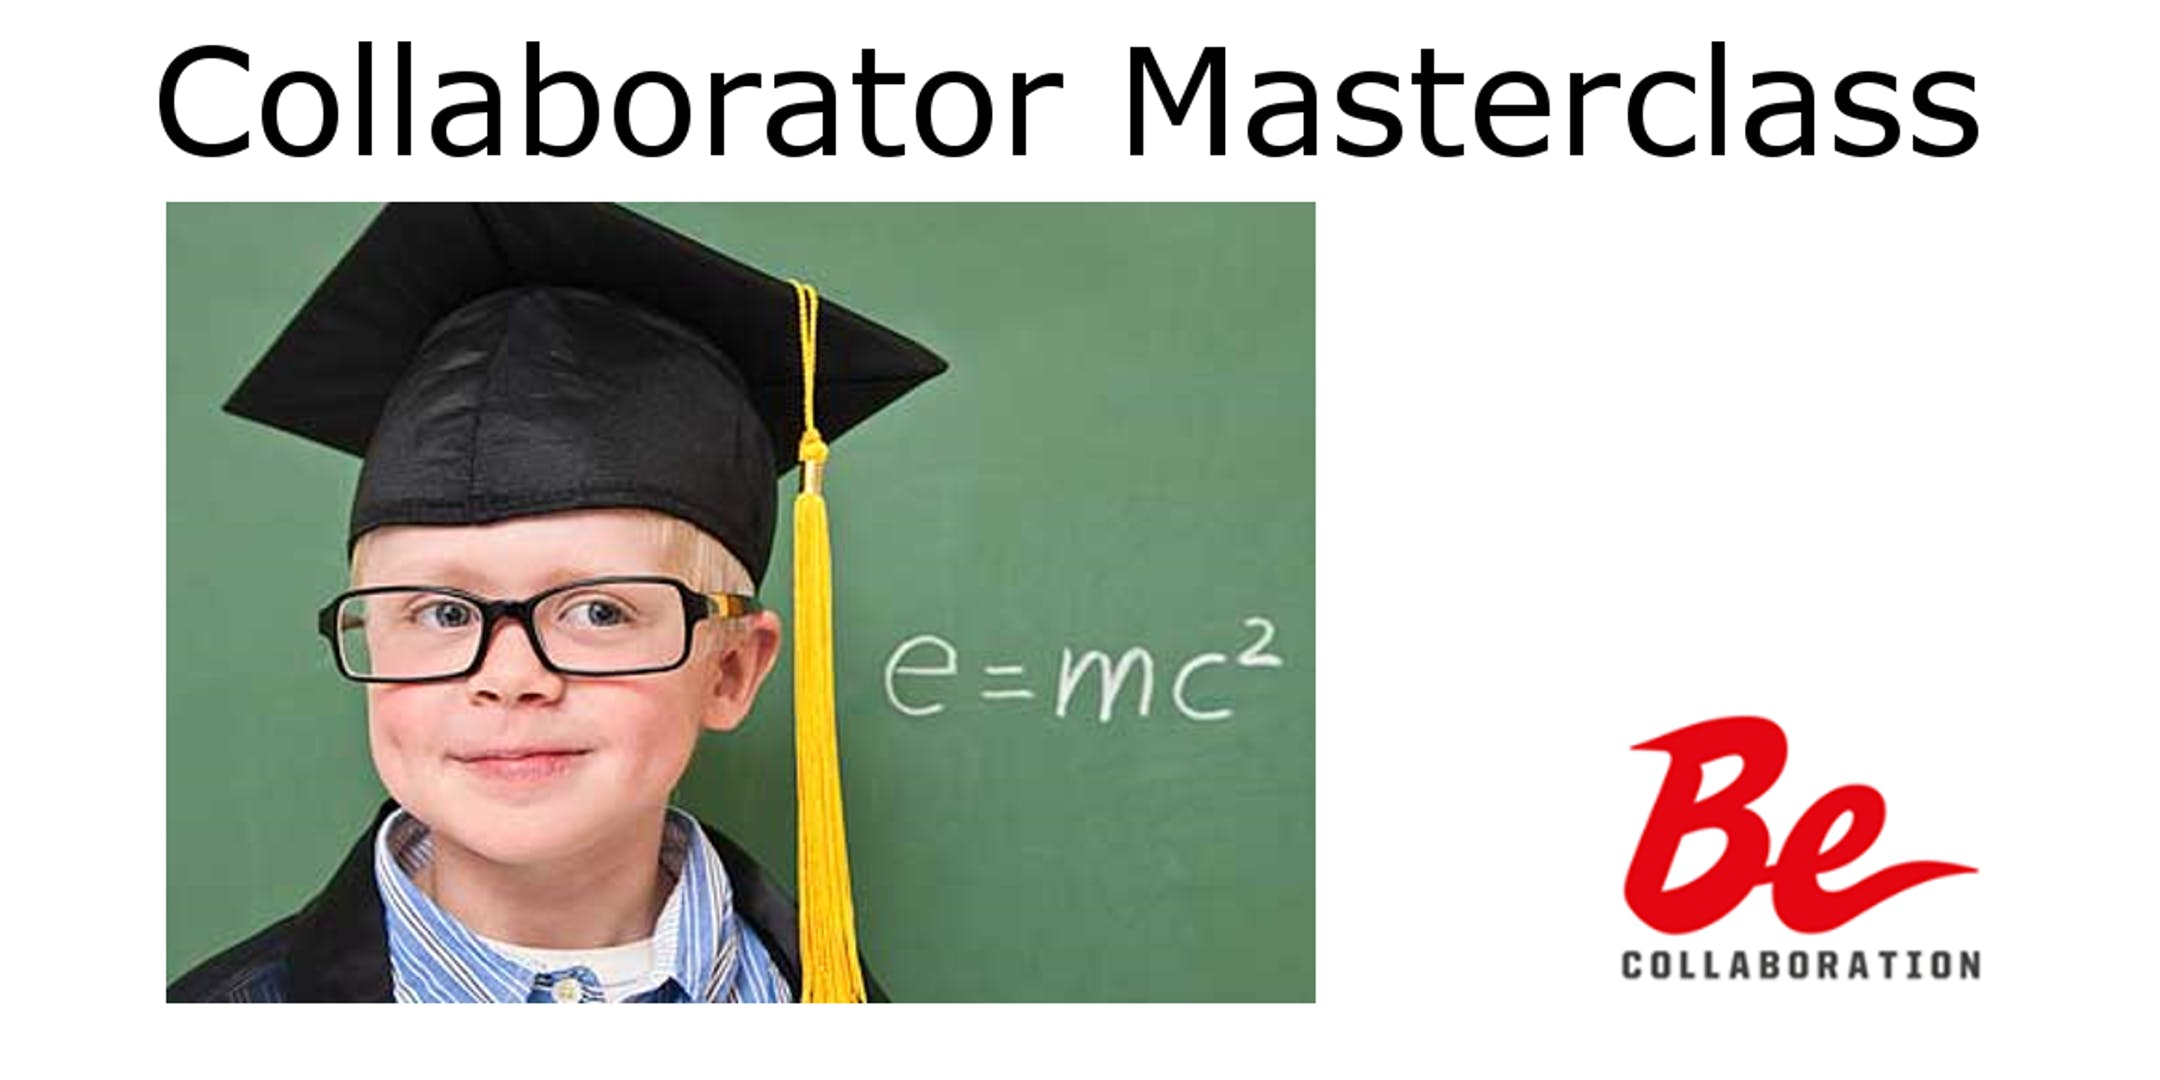 Collaborator Masterclass - Are you REALLY ready for your Quest? (Herts)